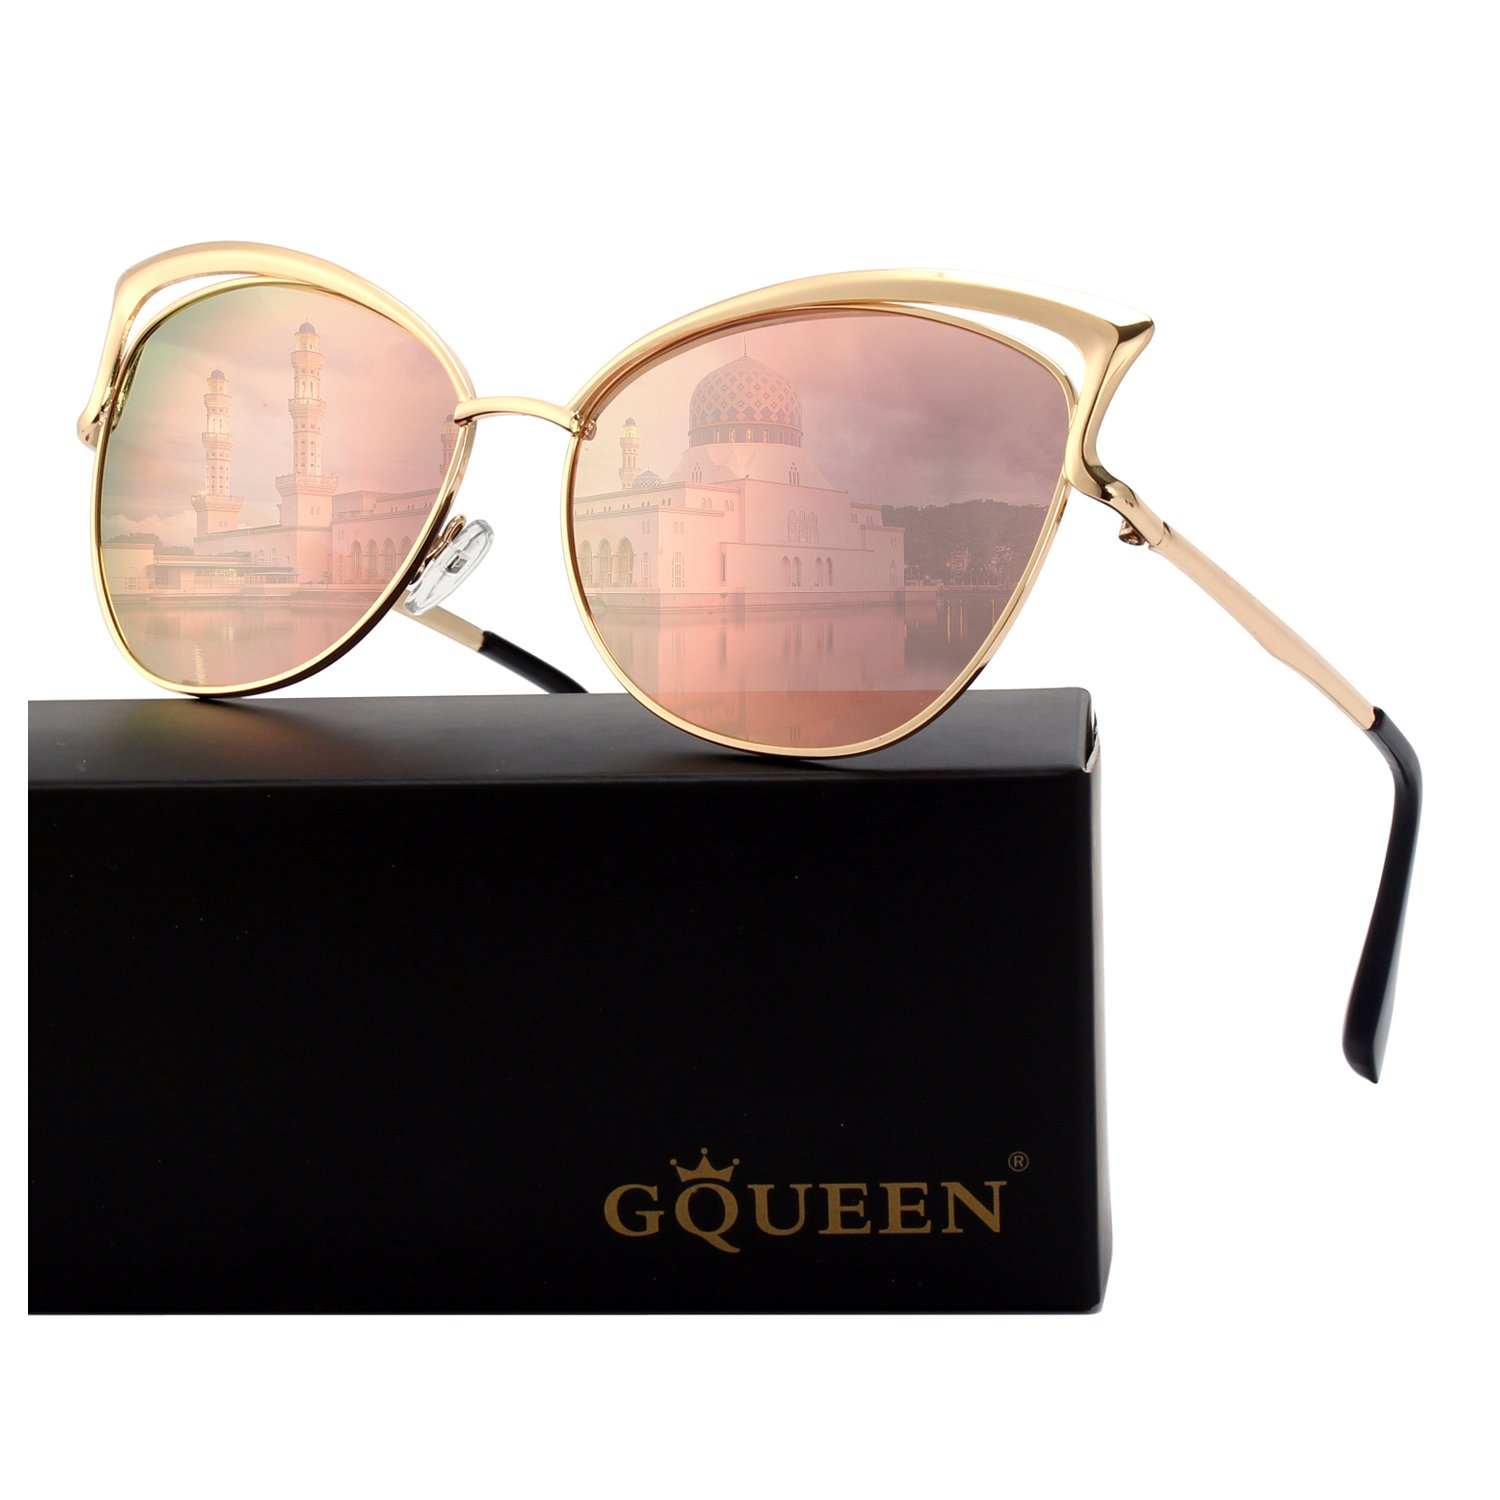 323f1a0229 GQUEEN Women s Oversized Polarized Metal Frame Mirrored Cat Eye Sunglasses  MT3